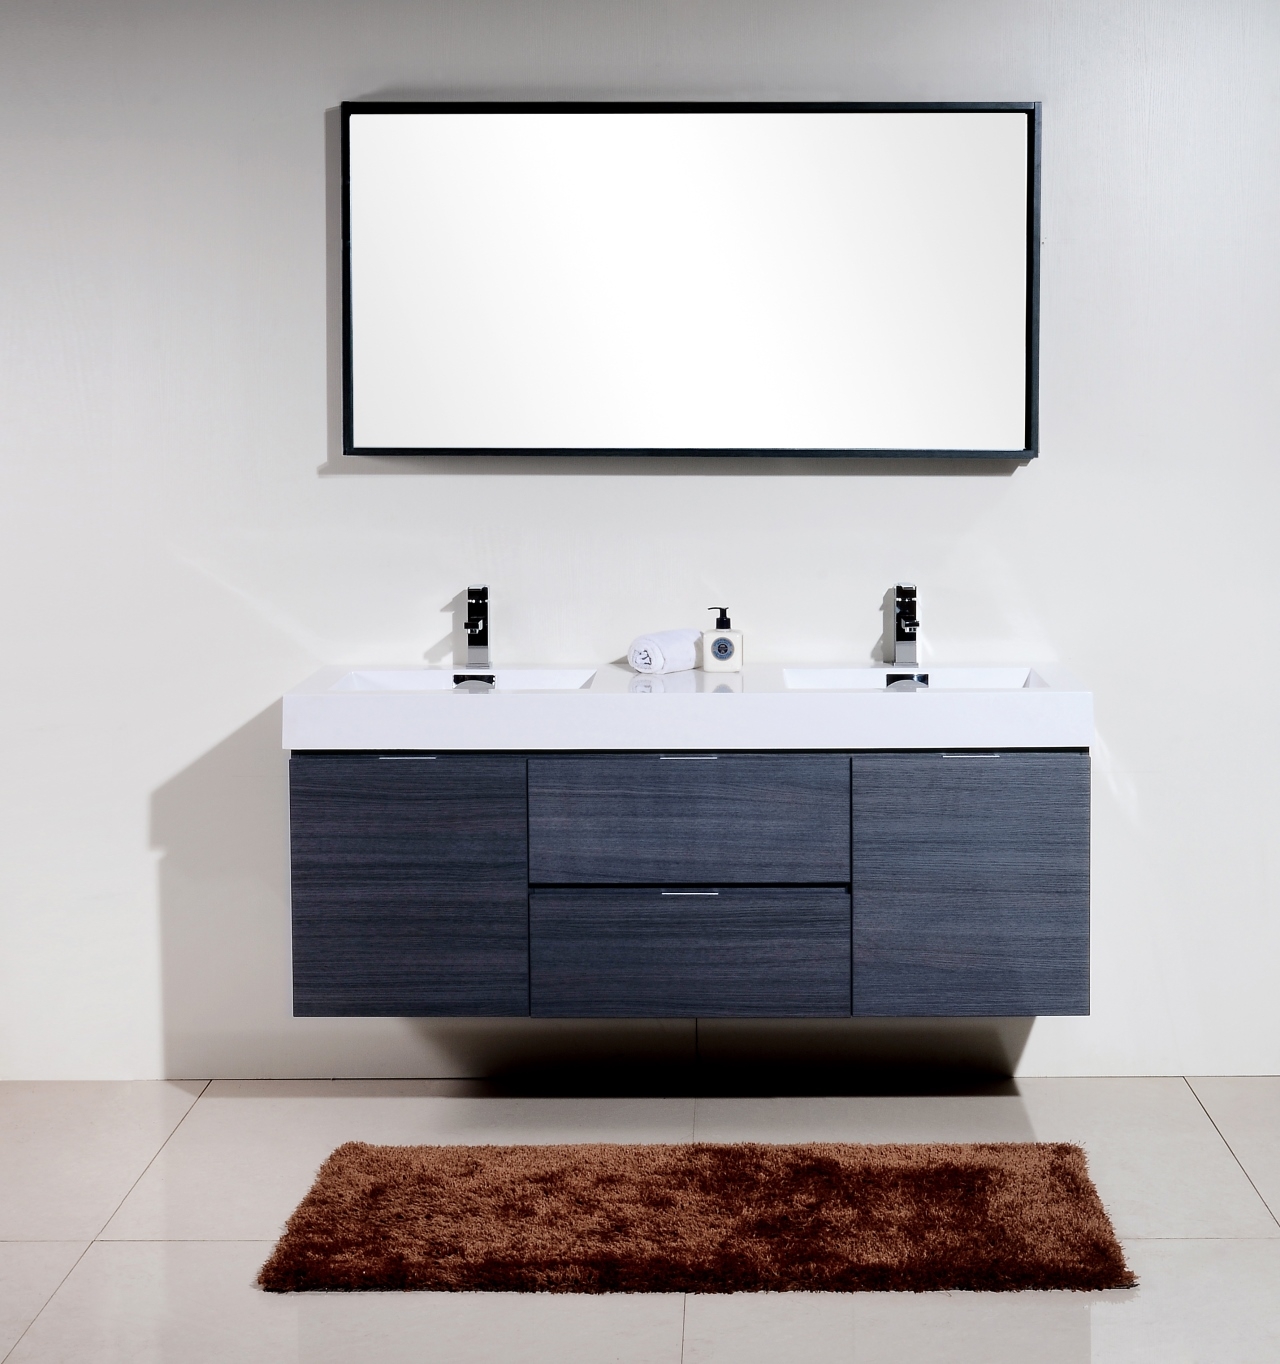 Bliss 60 gray oak wall mount double sink modern bathroom vanity - Contemporary european designer bathroom vanities ...